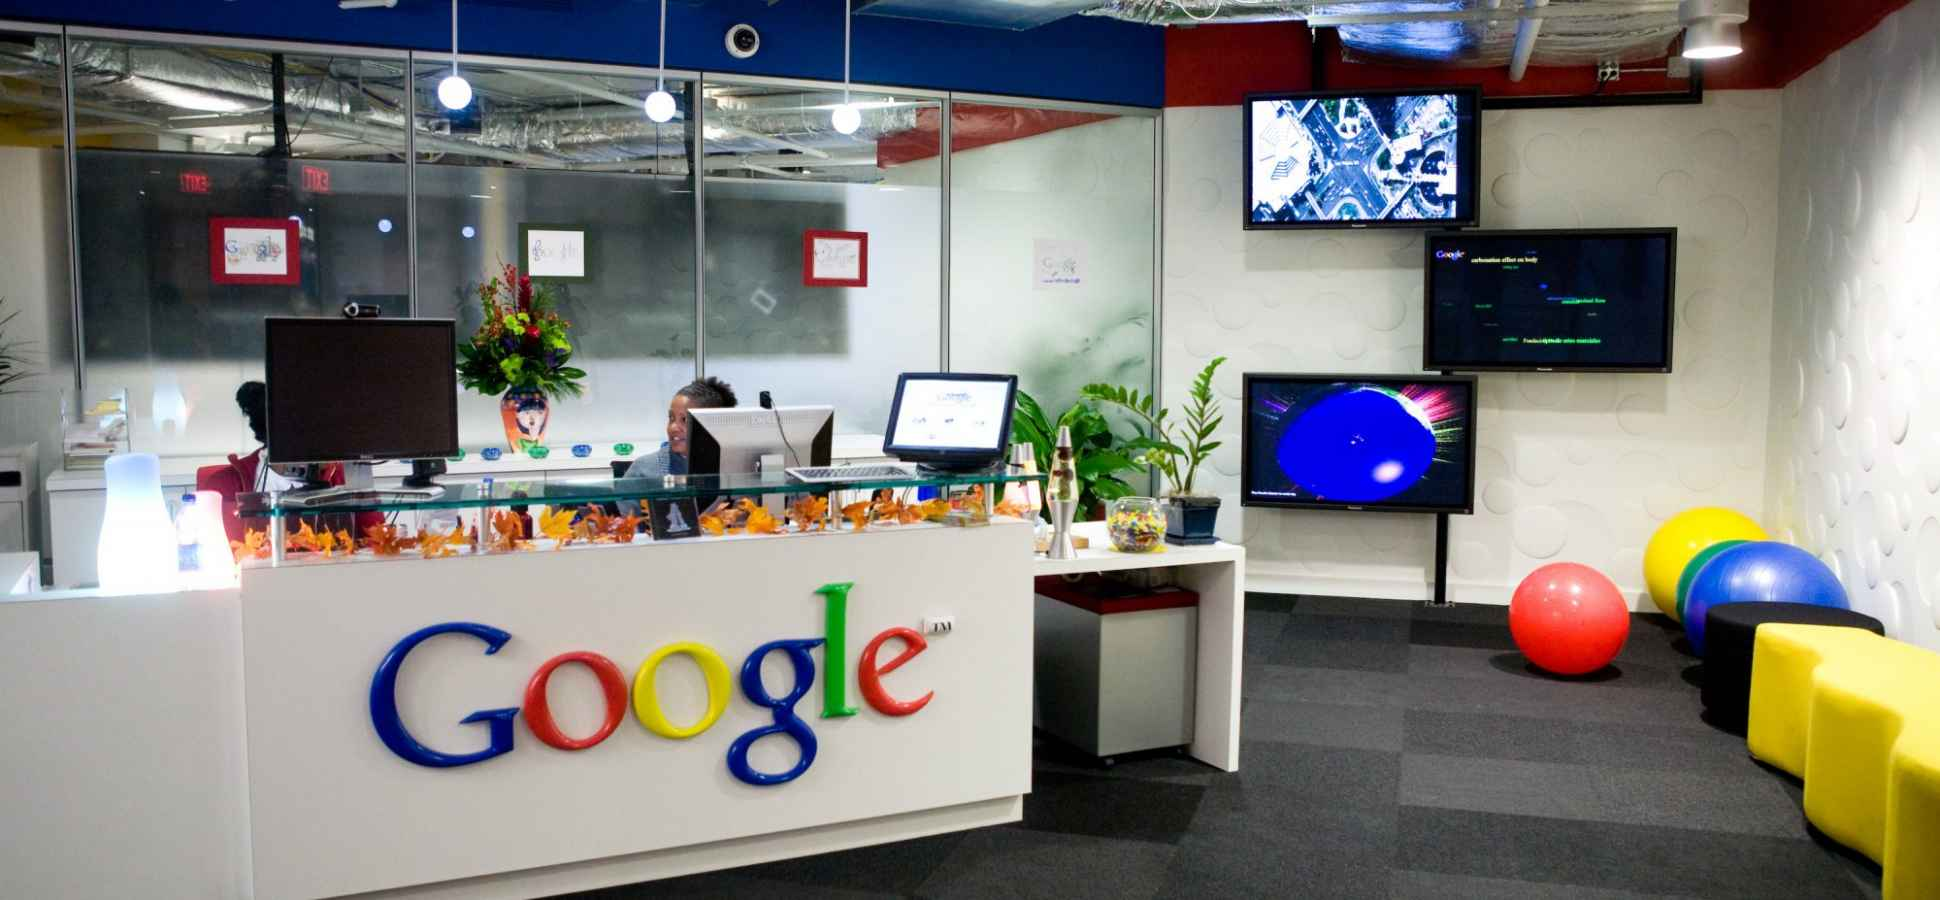 The 20 Best Employee Perks From Google, Facebook, and Other Giants